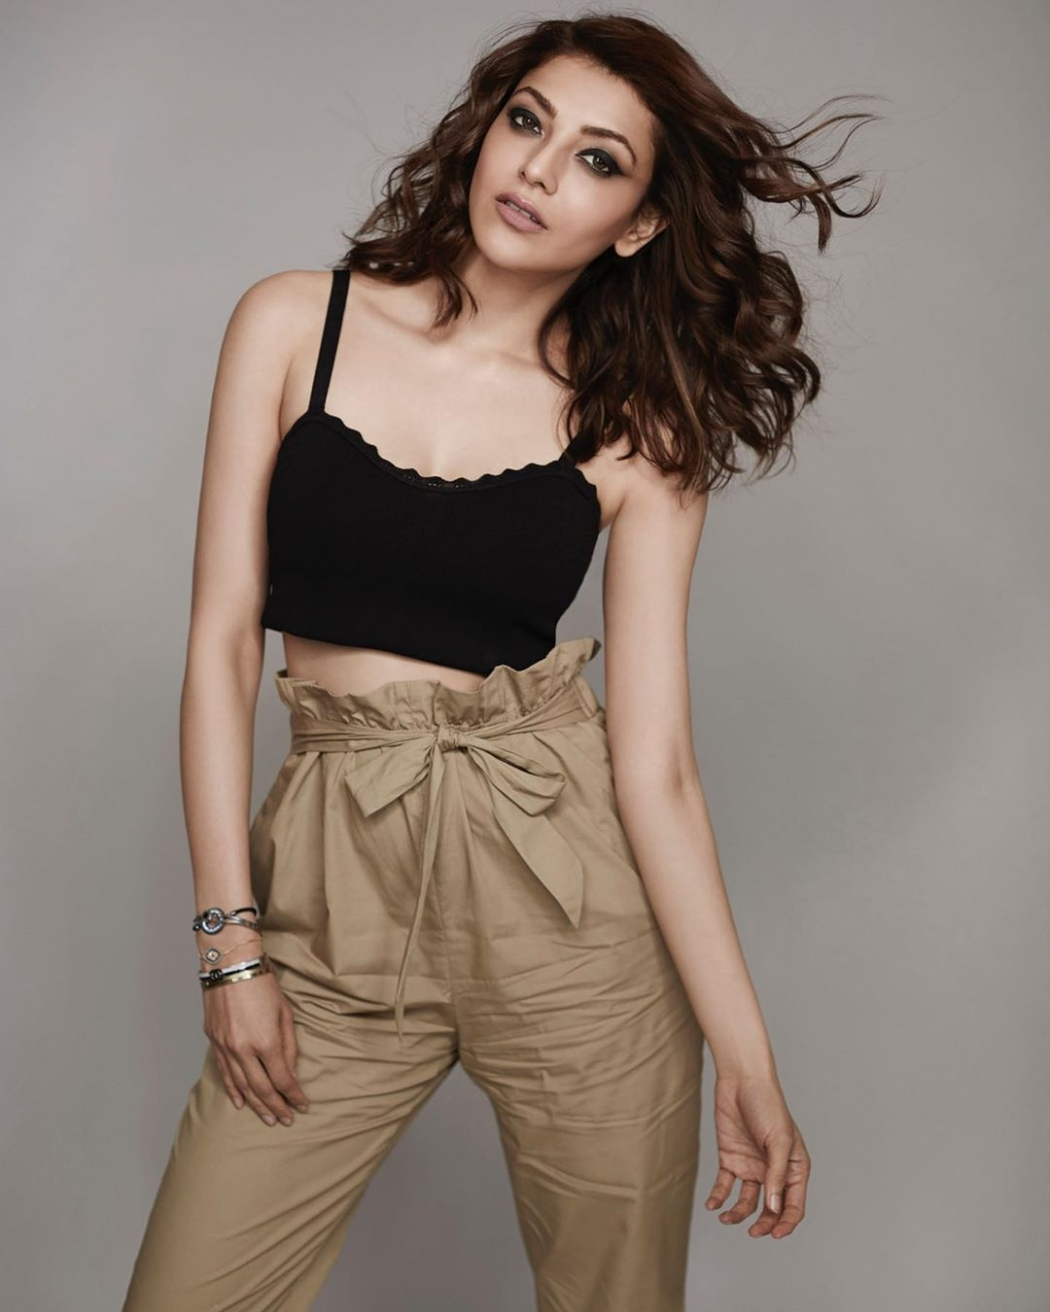 kajal-agarwal-recent-hot-photos-2